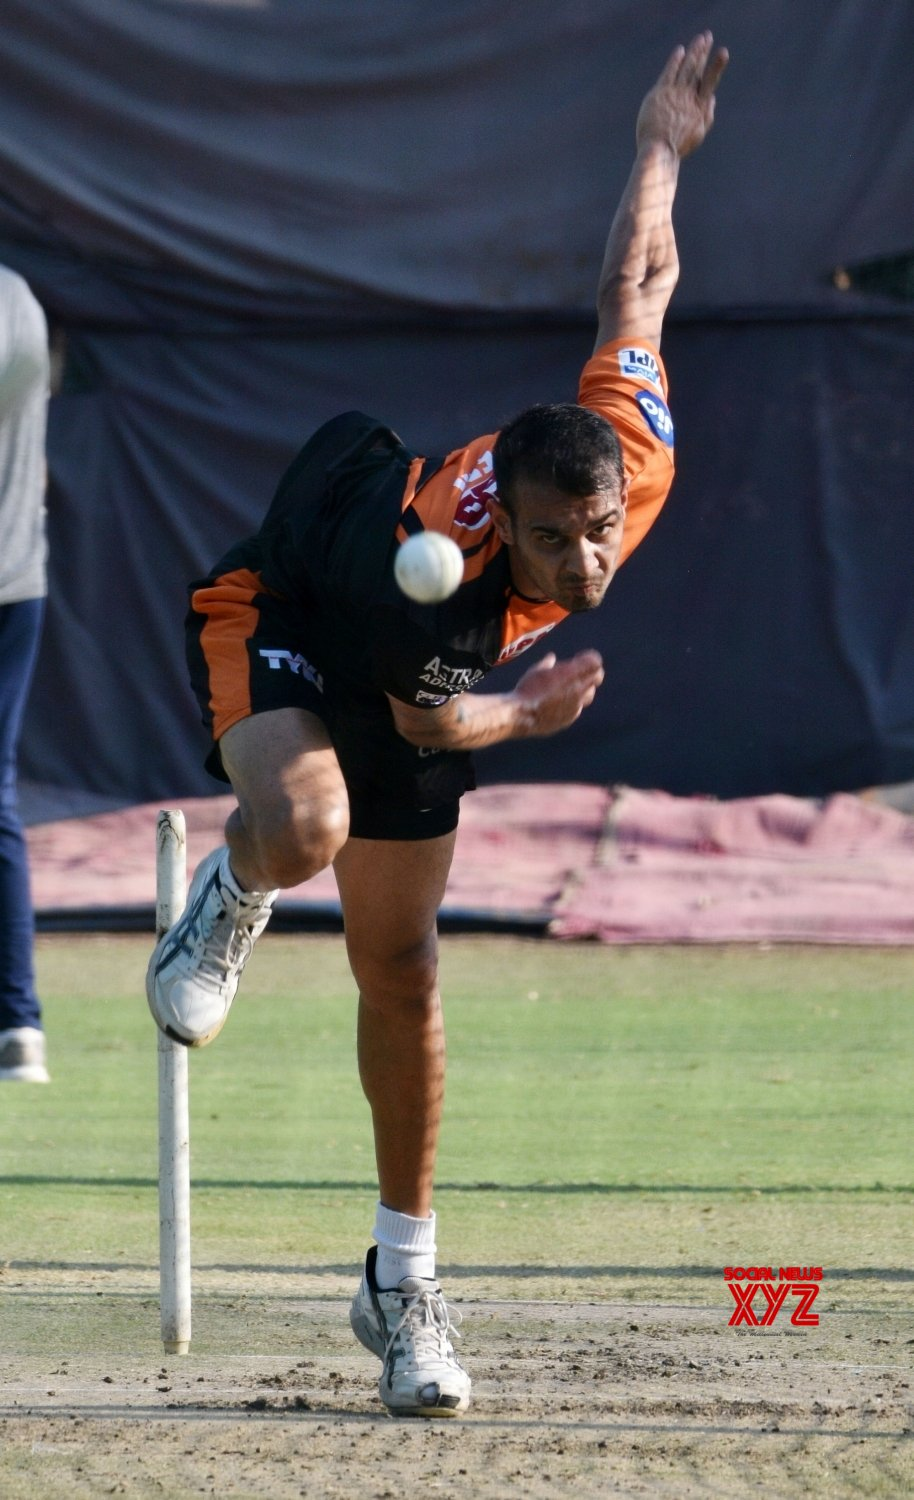 Hyderabad: Sunrisers Hyderabad's practice session (Batch - 2) #Gallery